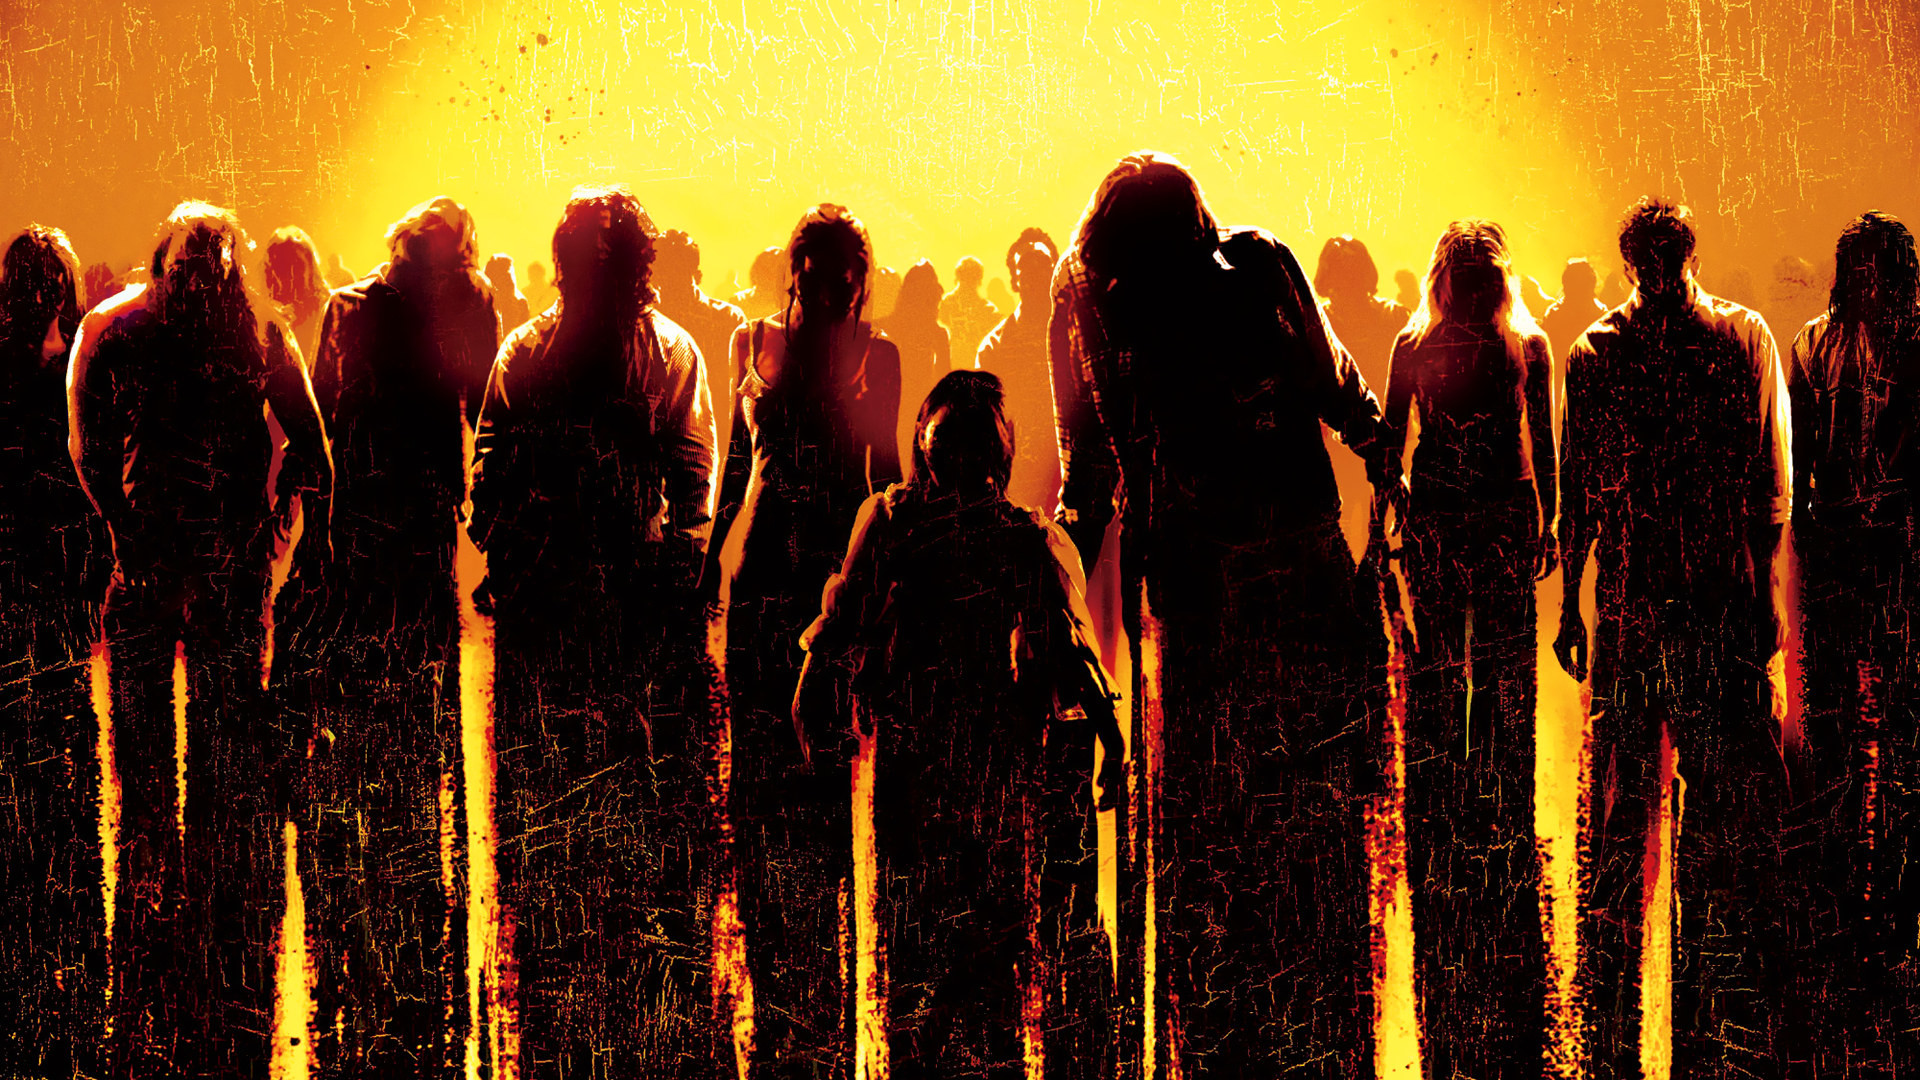 1920x1080 DAWN OF THE DEAD dark zombie wallpaper